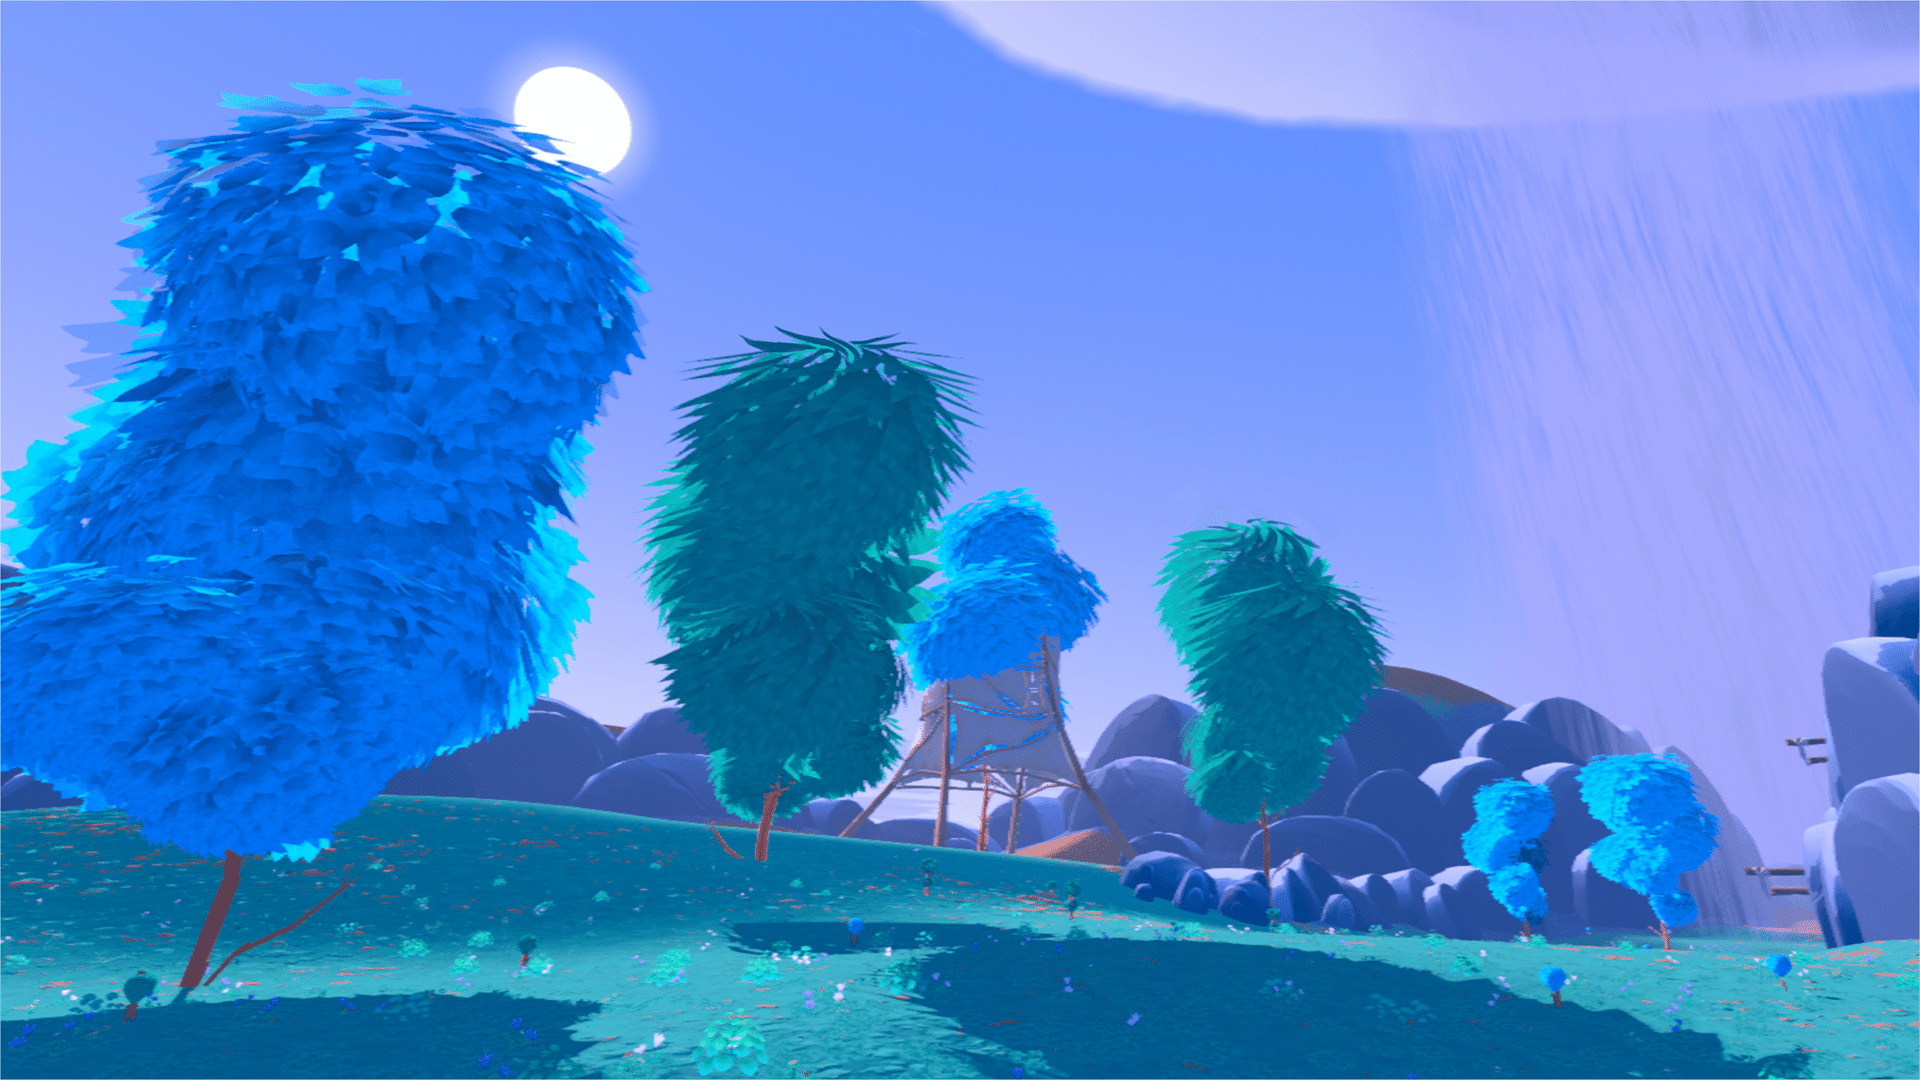 Winds & Leaves Review: A Peaceful Kind Of Progress